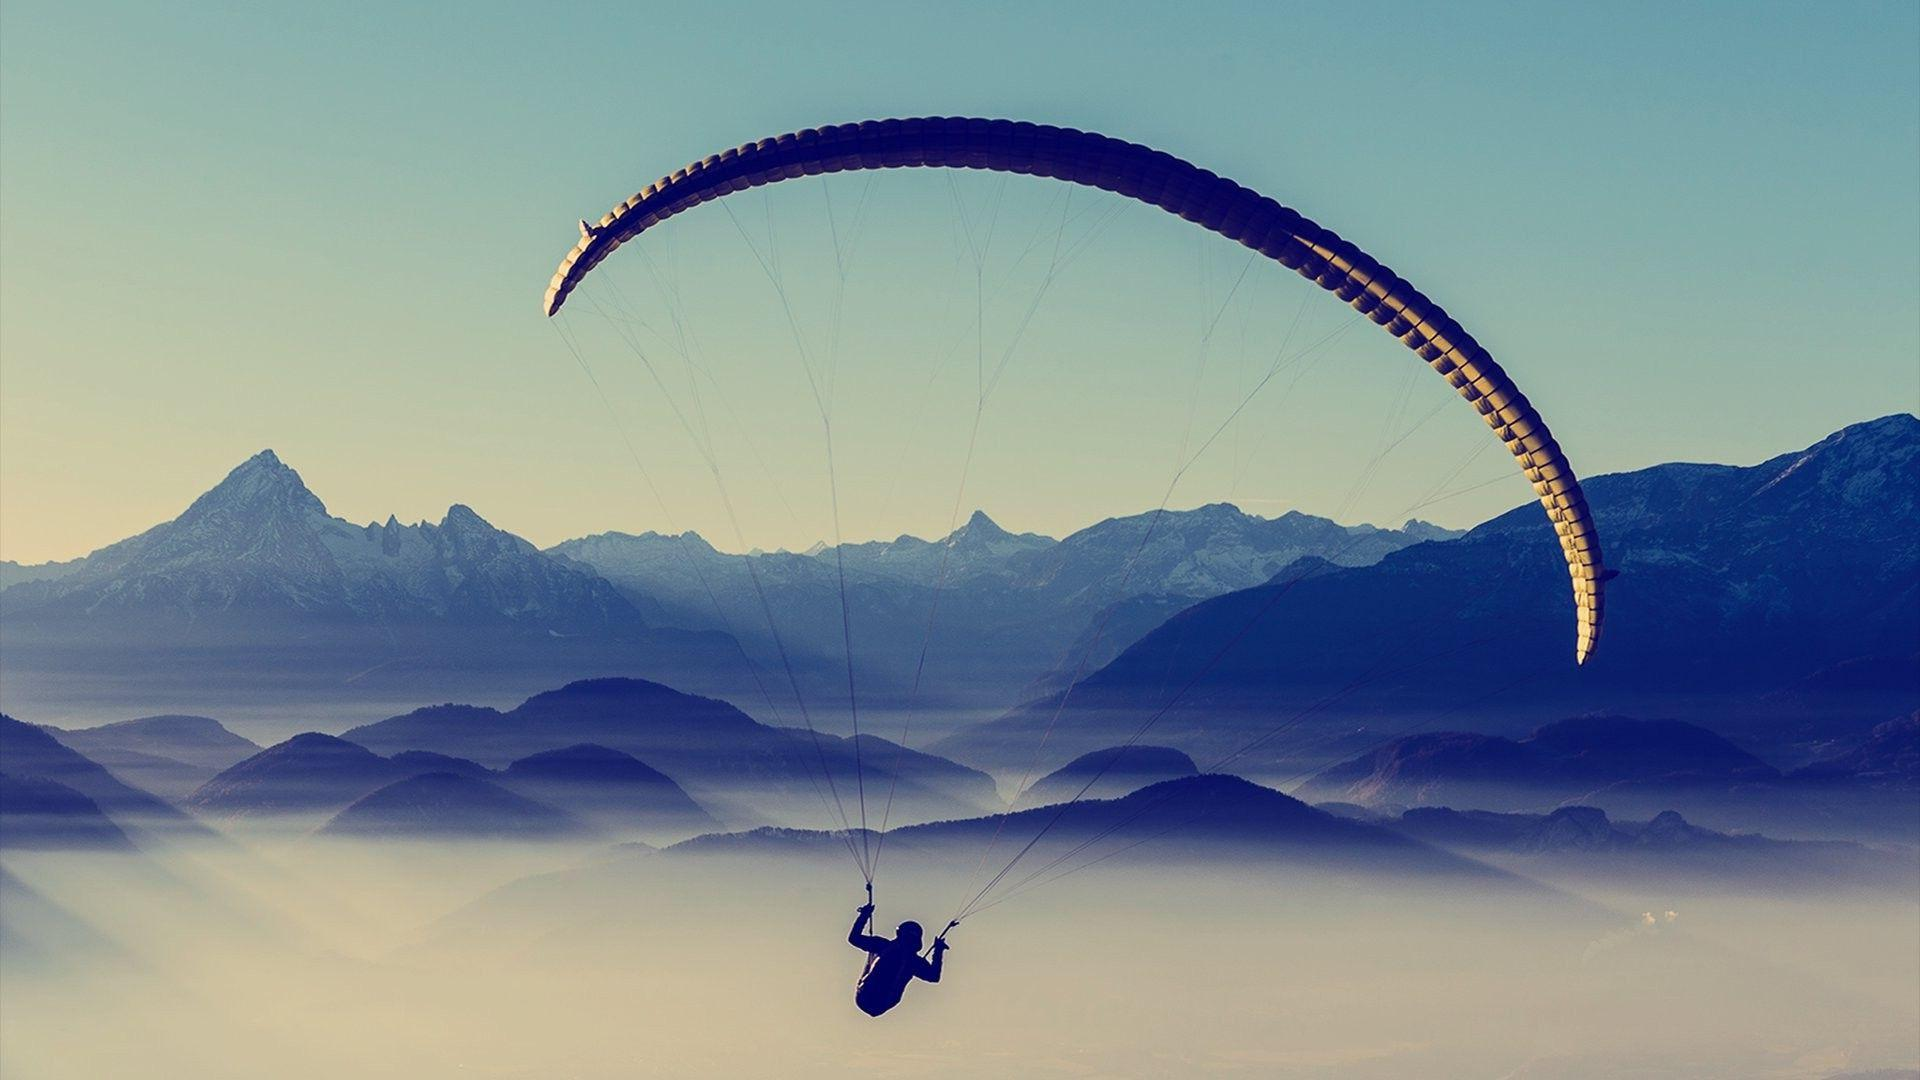 Paragliding Wallpapers - Wallpaper Cave